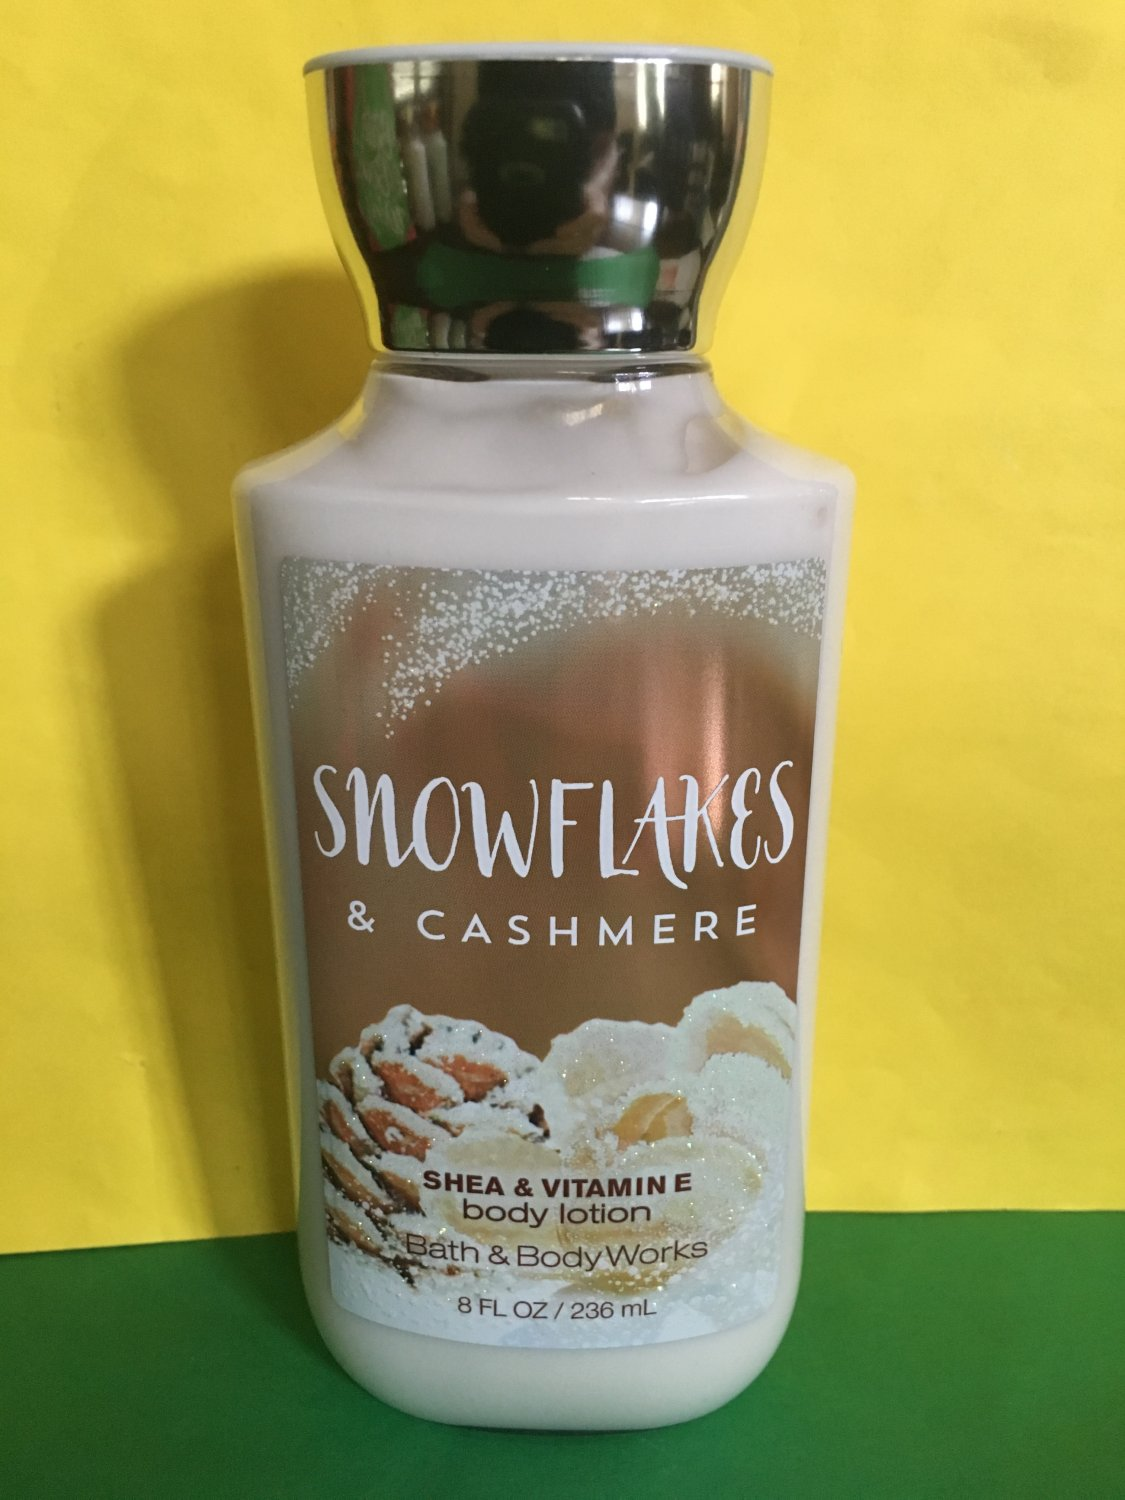 Bath Amp Body Works Snowflakes And Cashmere Body Lotion Full